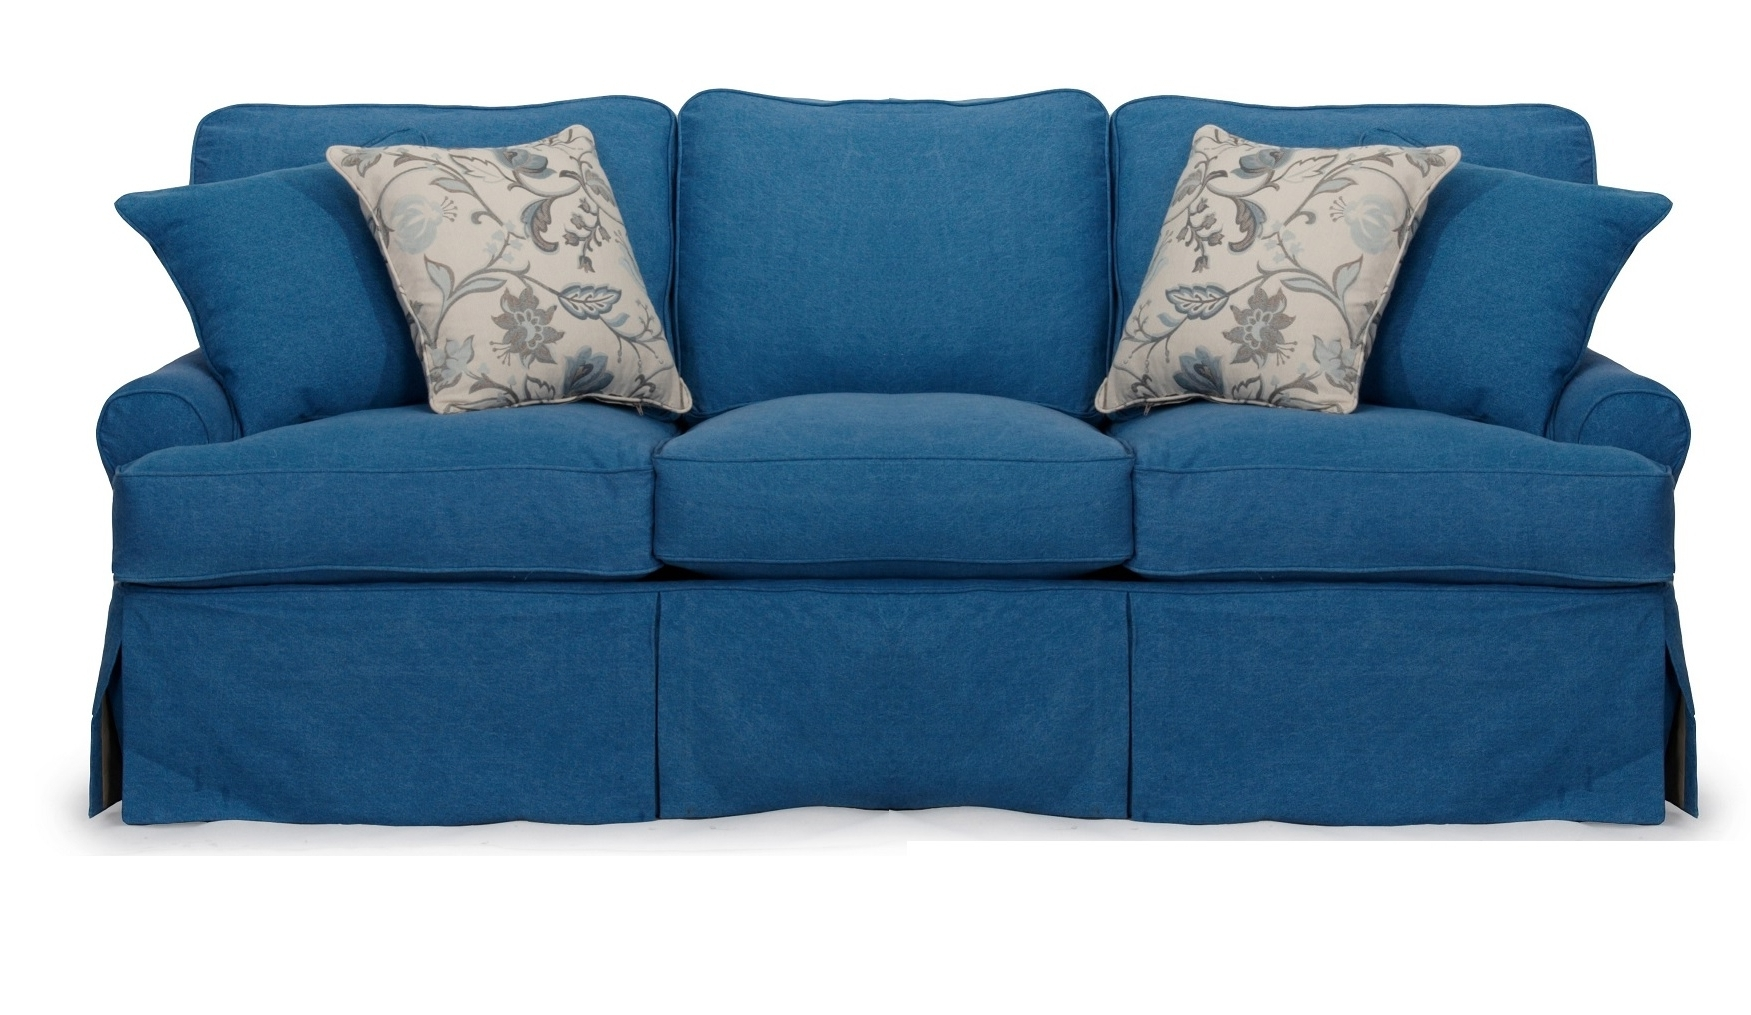 Most Popular Blue Sofa Chairs In Sofa: Best Ashley Furniture Blue Sofa Couch Furniture, Ashley Sofa (View 7 of 15)